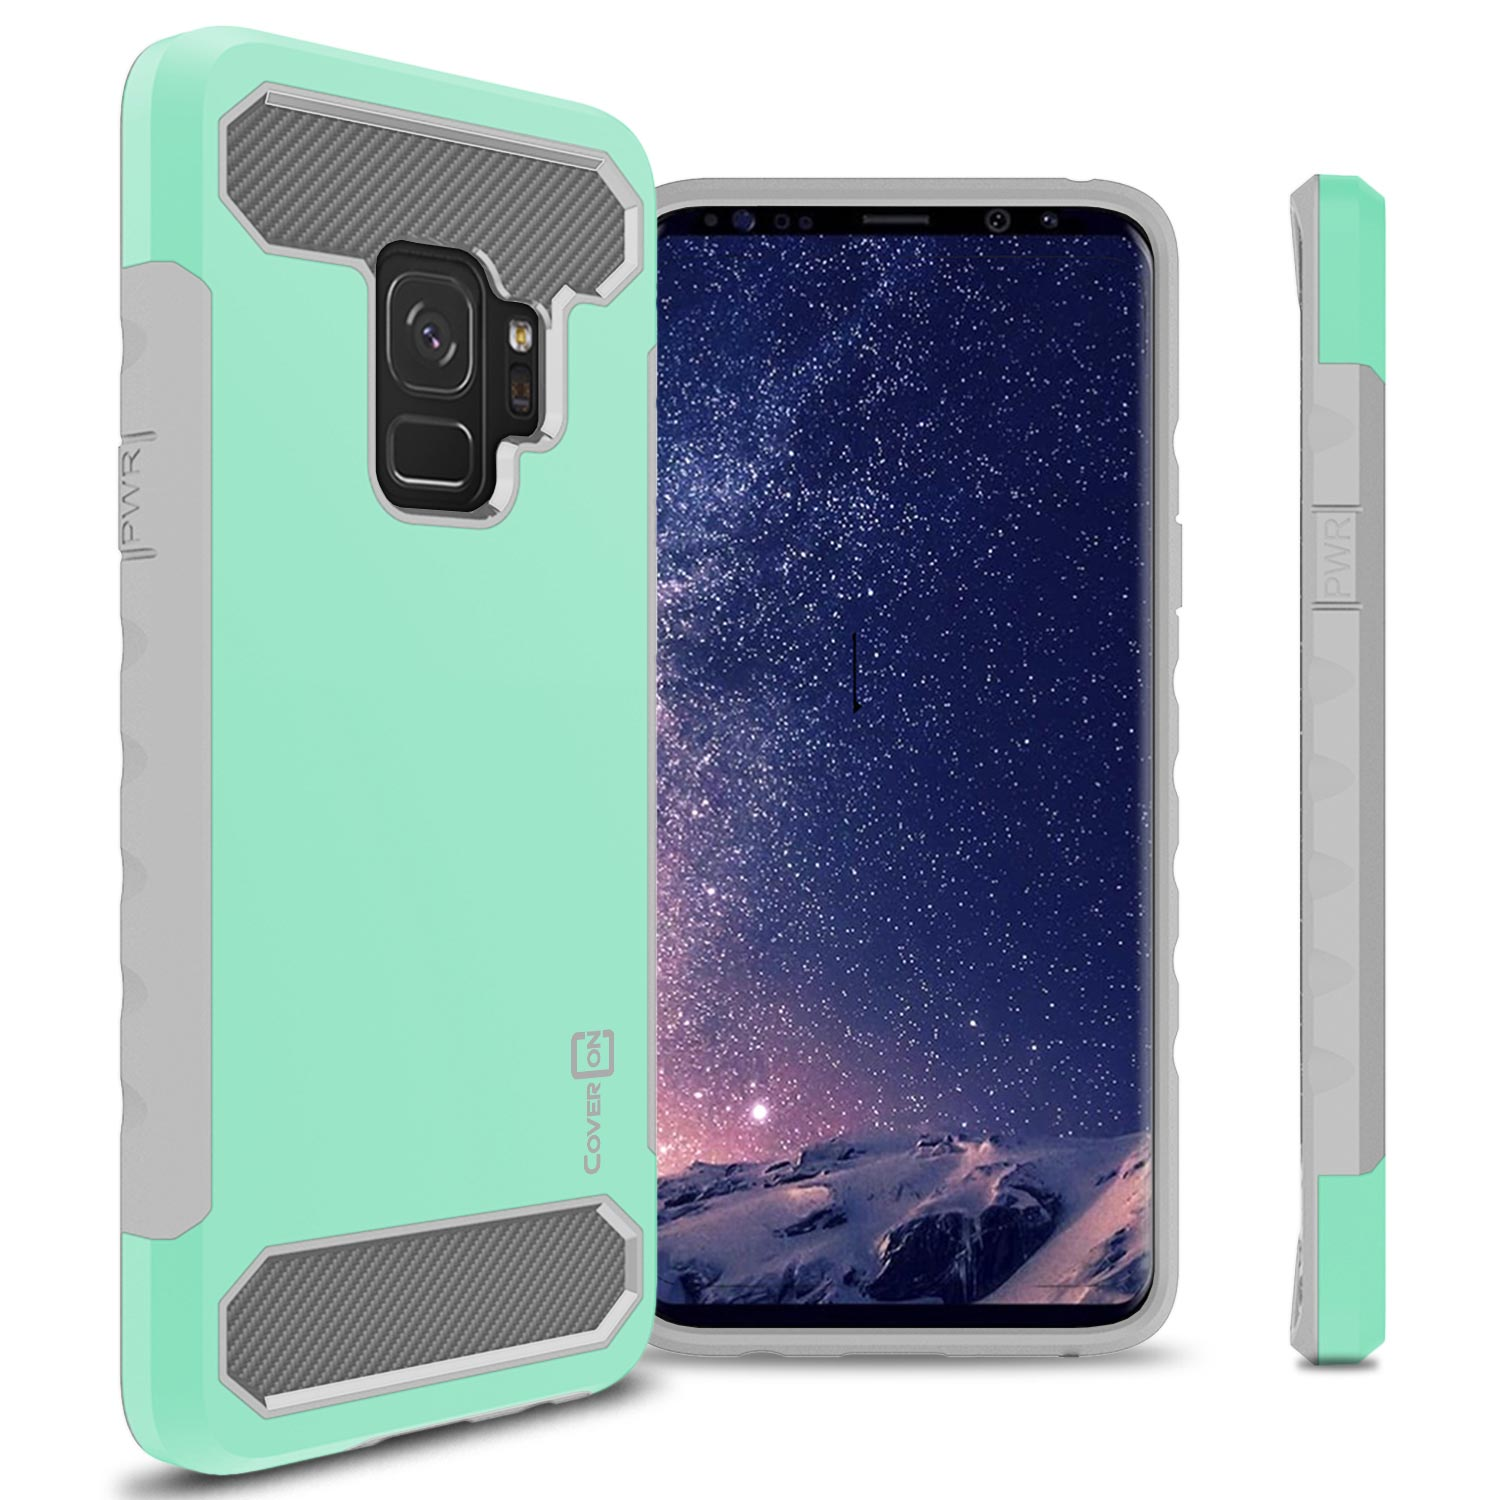 CoverON Samsung Galaxy S9 Case, Arc Series Hybrid Phone Cover with Carbon Fiber Accents